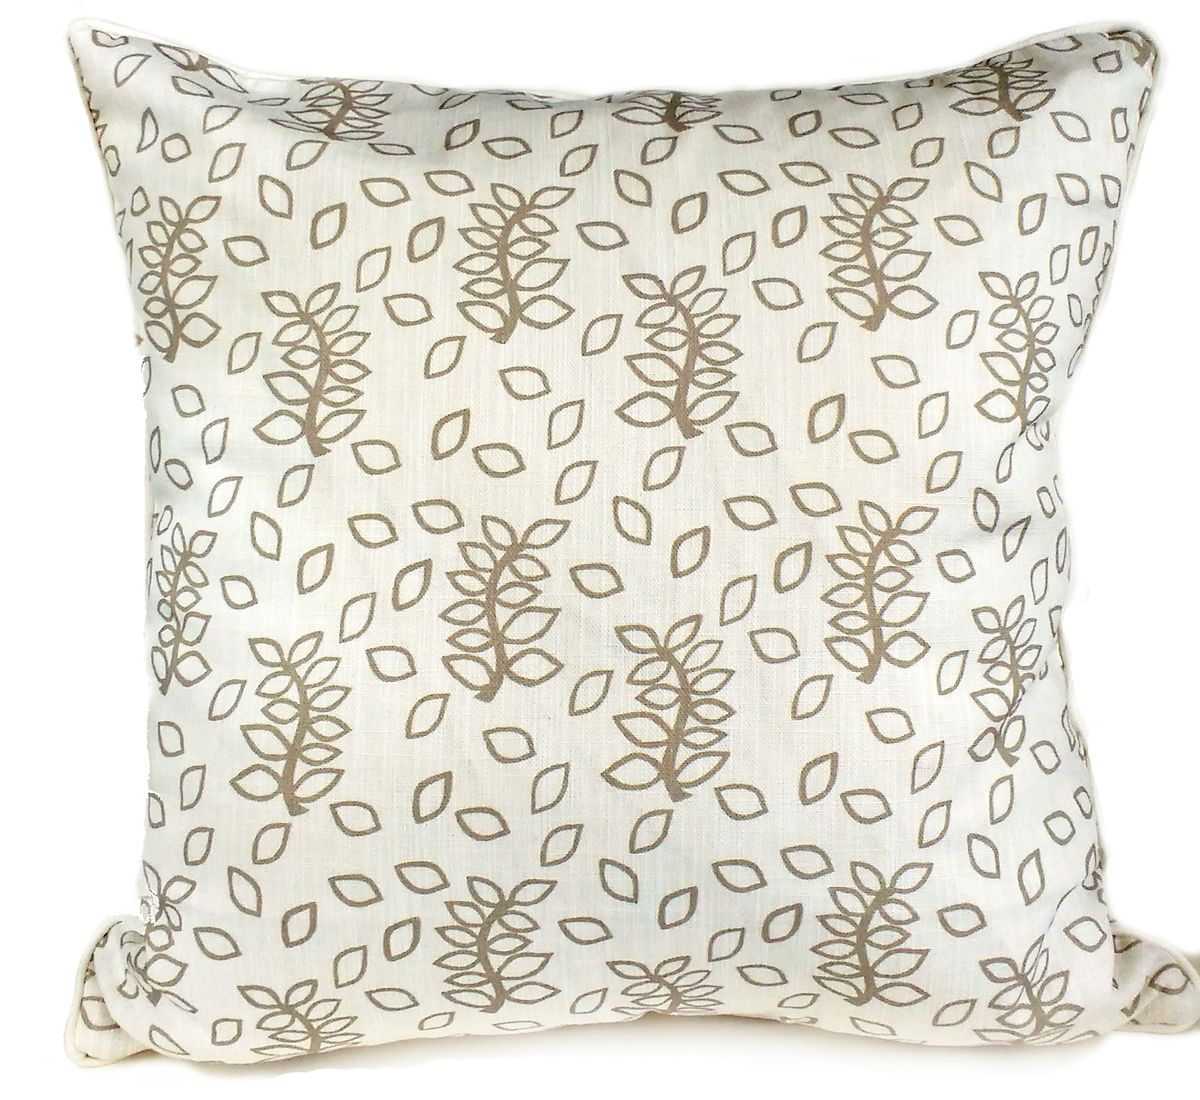 vory leaves handmade piped linen cotton mix cushion